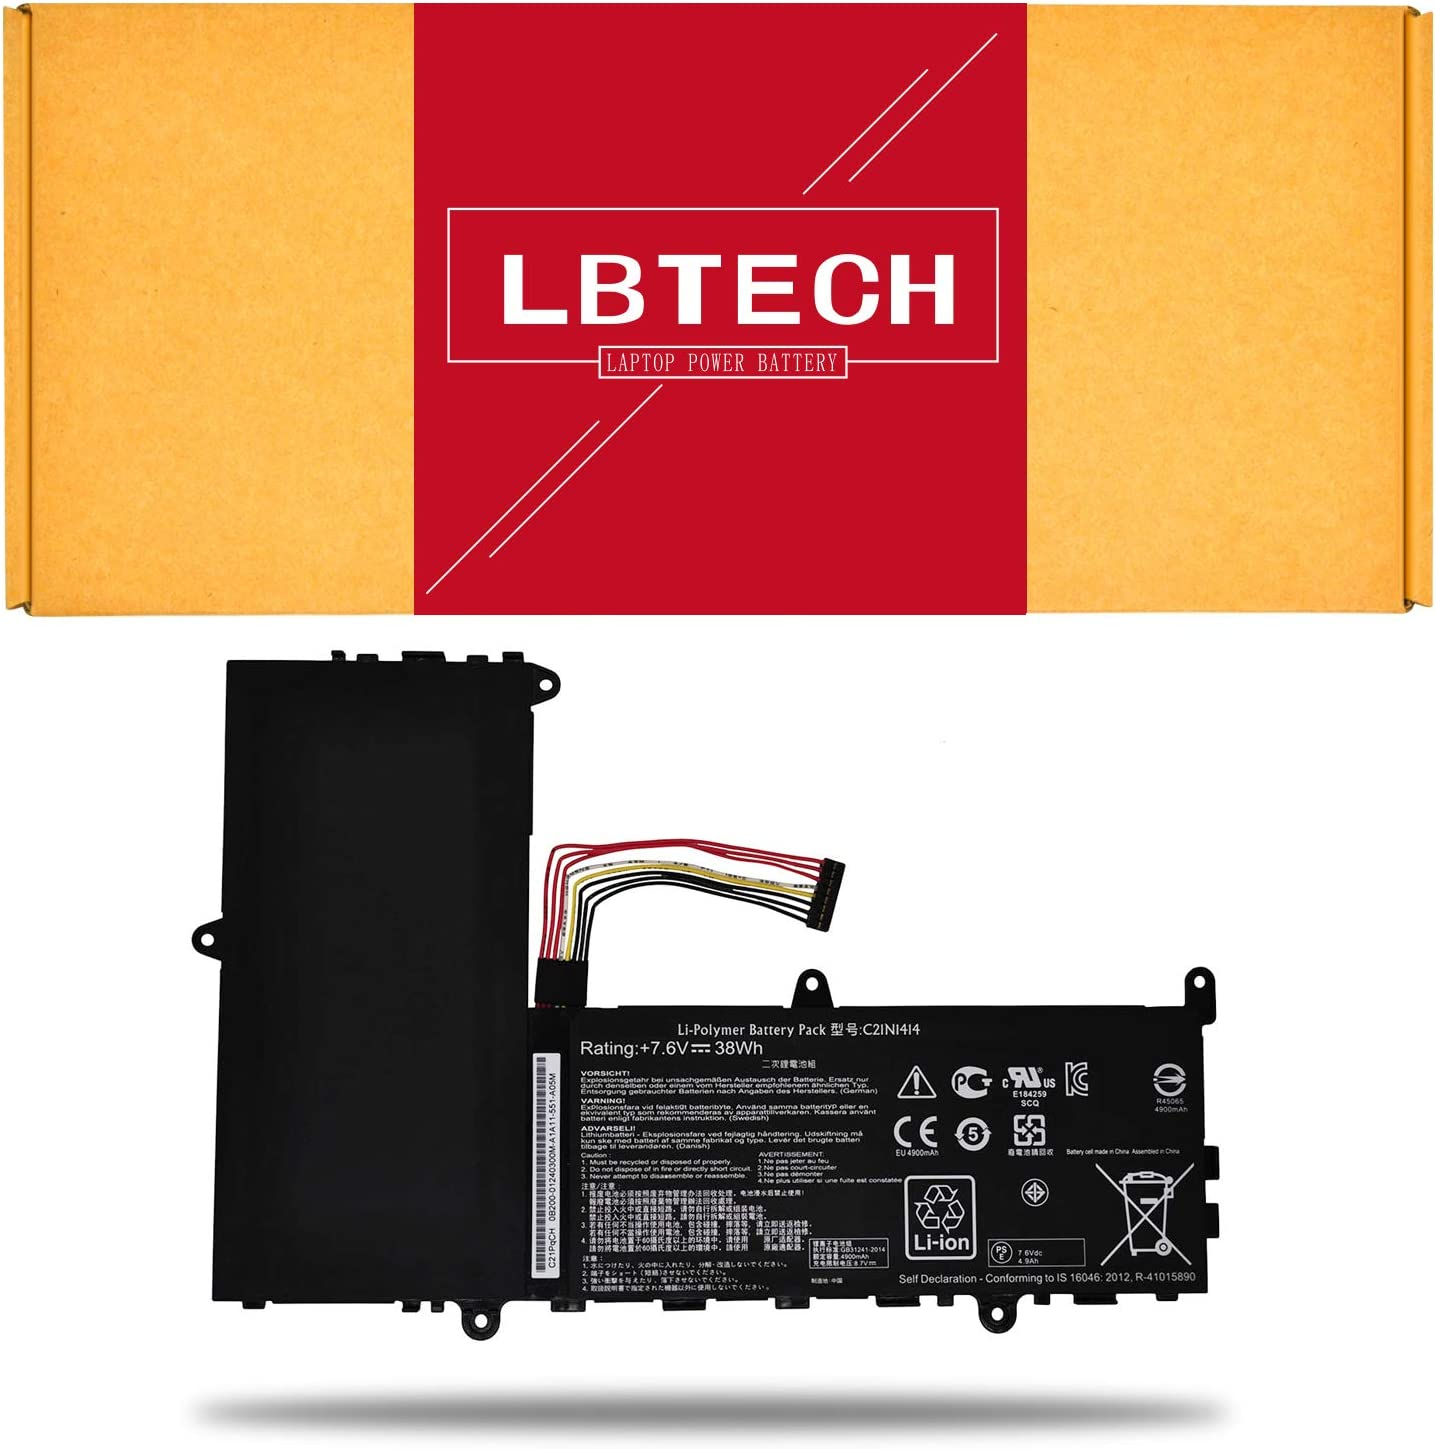 """LBTECH C21N1414 Compatible Laptop Battery Replacement for ASUS EeeBook X205T X205TA-BING-FD015B 11.6"""" Series C21PQ91 CKSE321D1 7.6V 38Wh"""